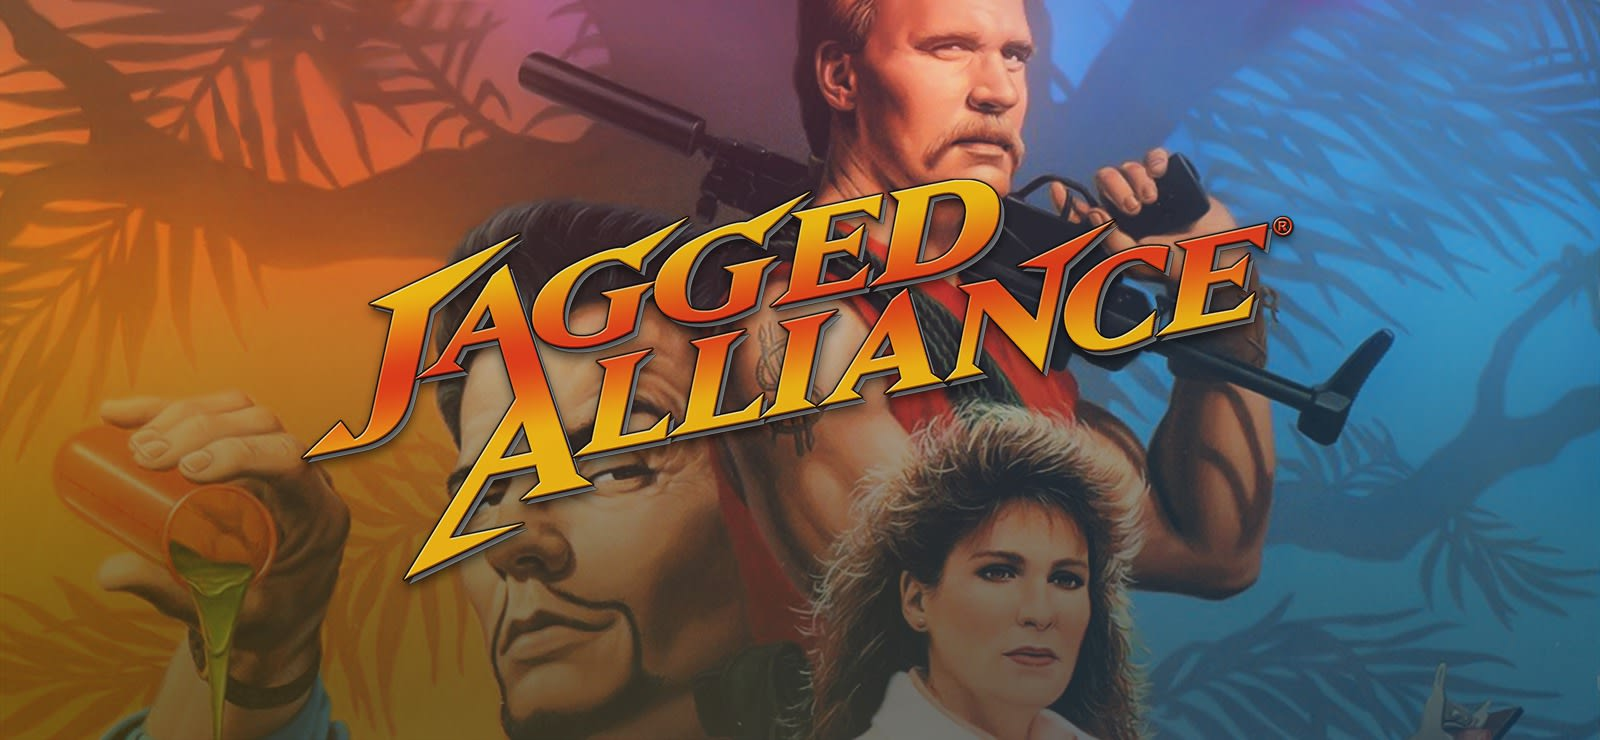 Jagged Alliance varies-with-device